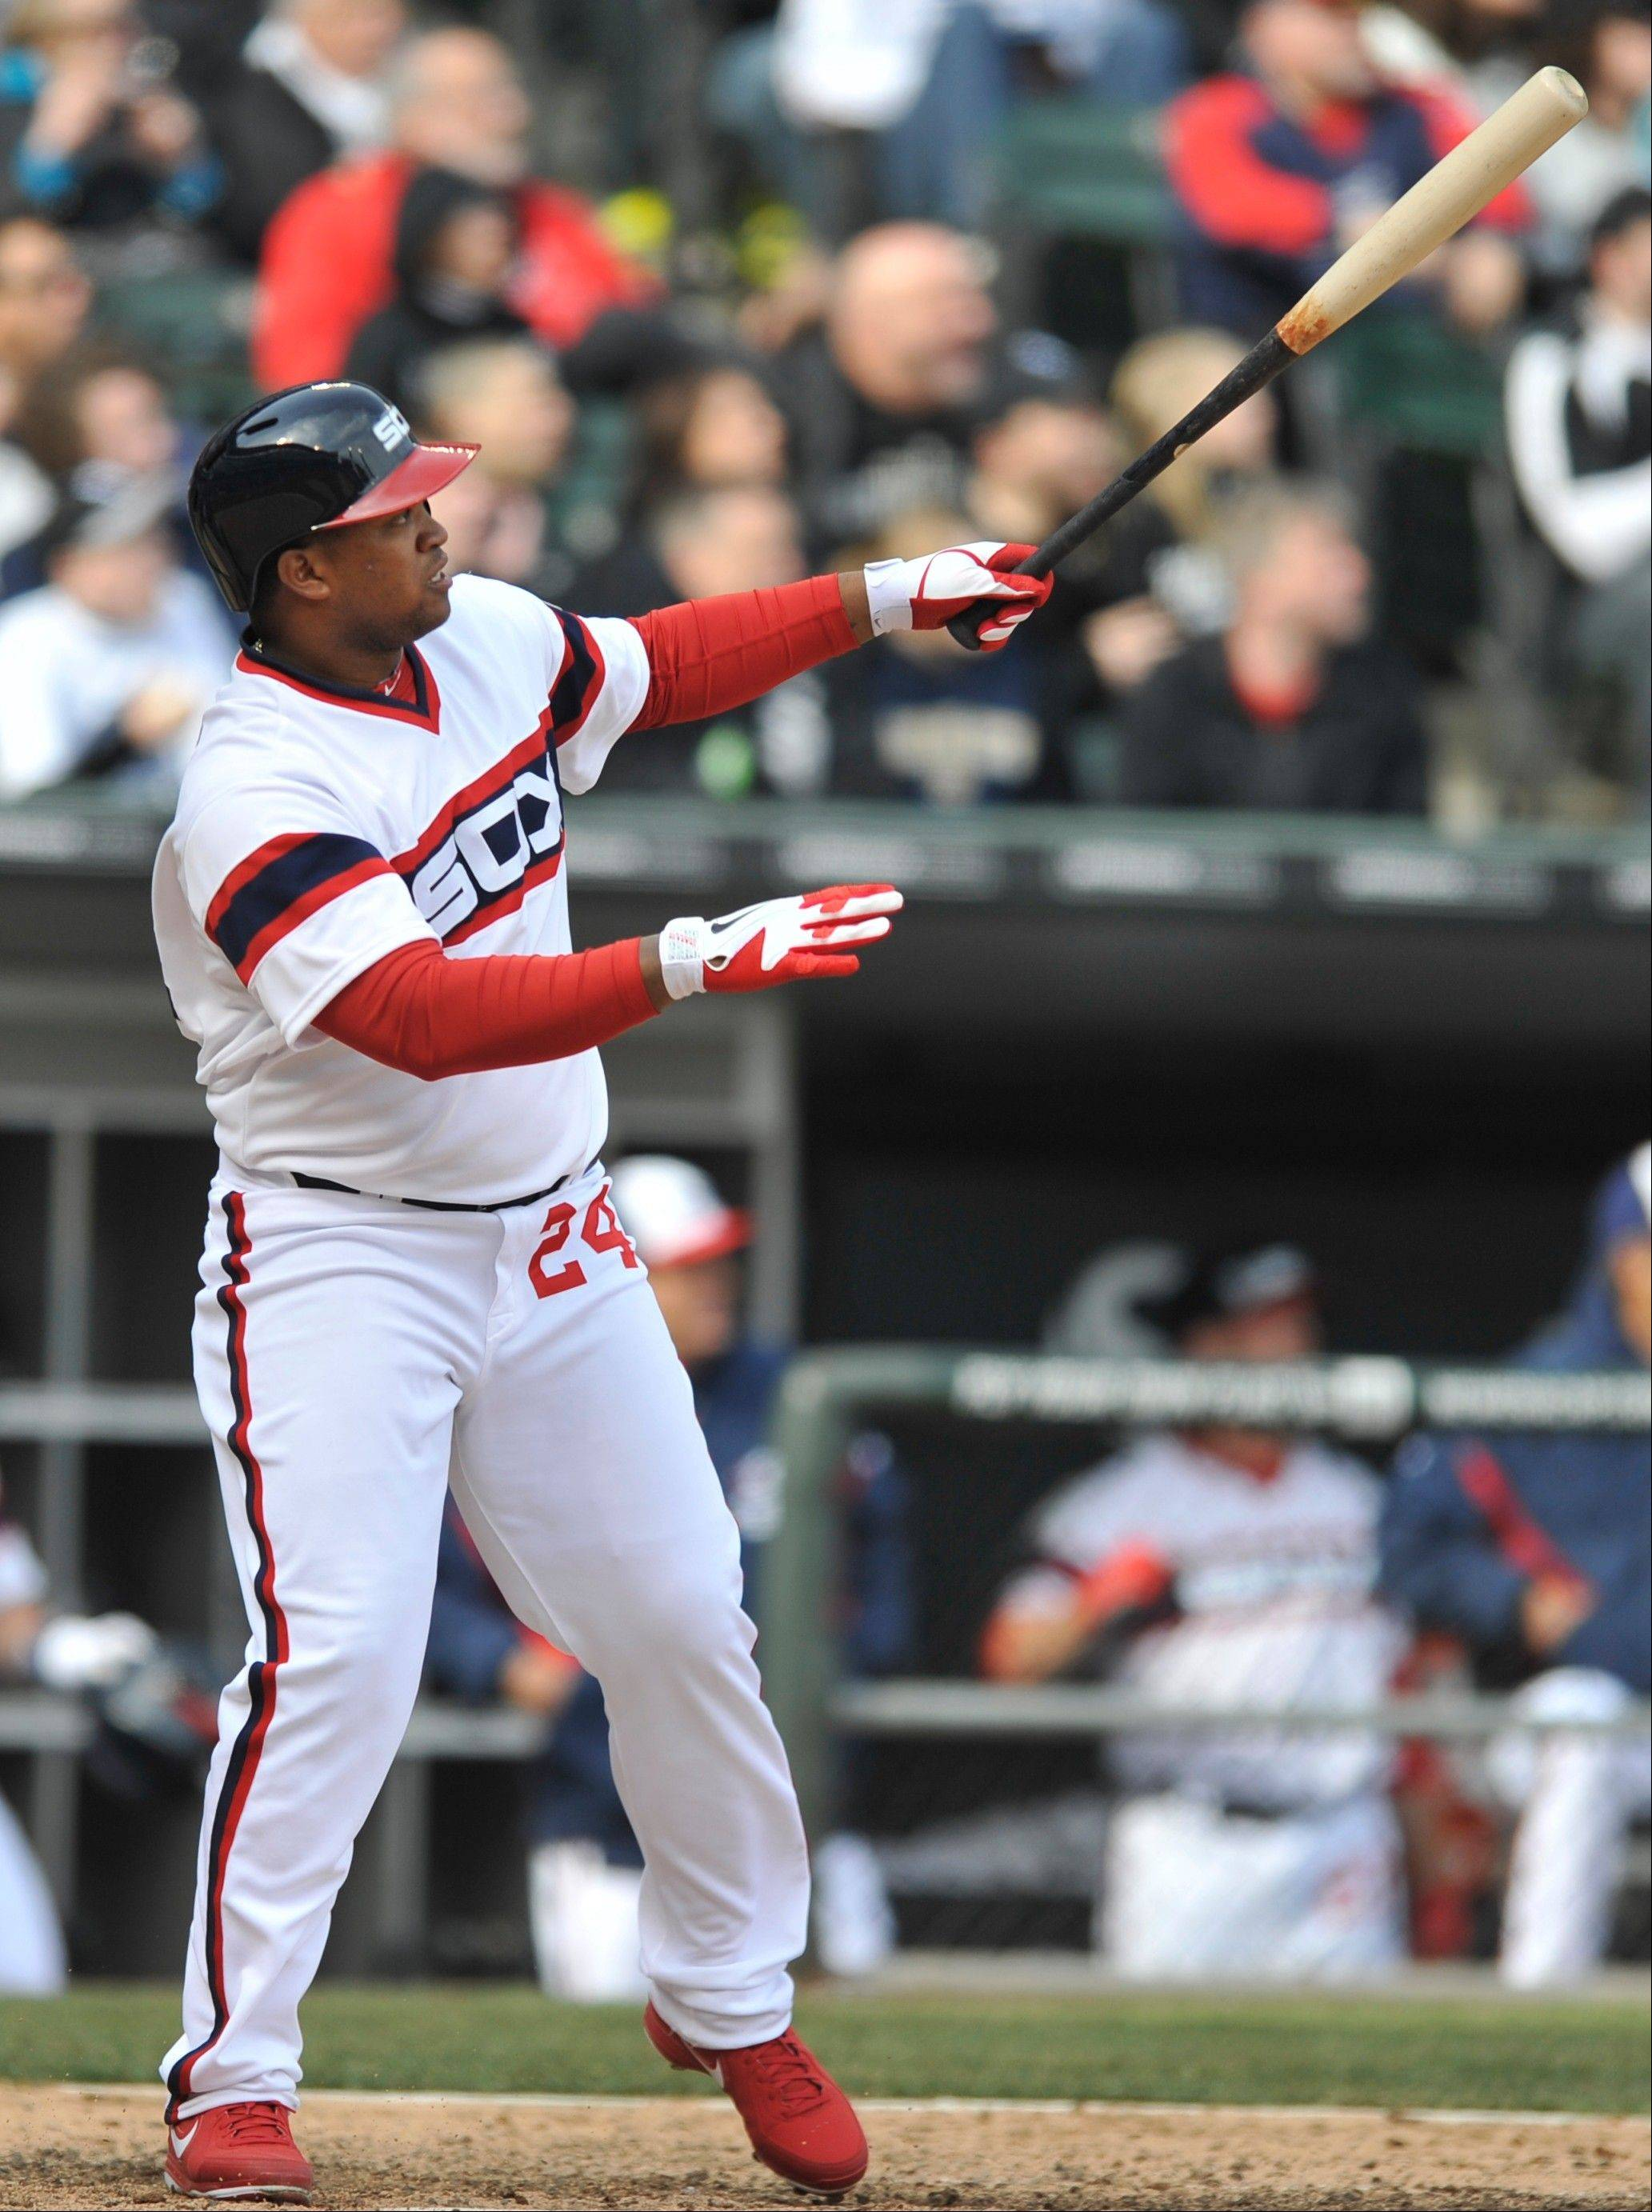 Dayan Viciedo watches his walkoff home run in the 10th inning Sunday at U.S. Cellular Field. Viciedo�s shot gave the Sox a 4-3 win over Seattle.